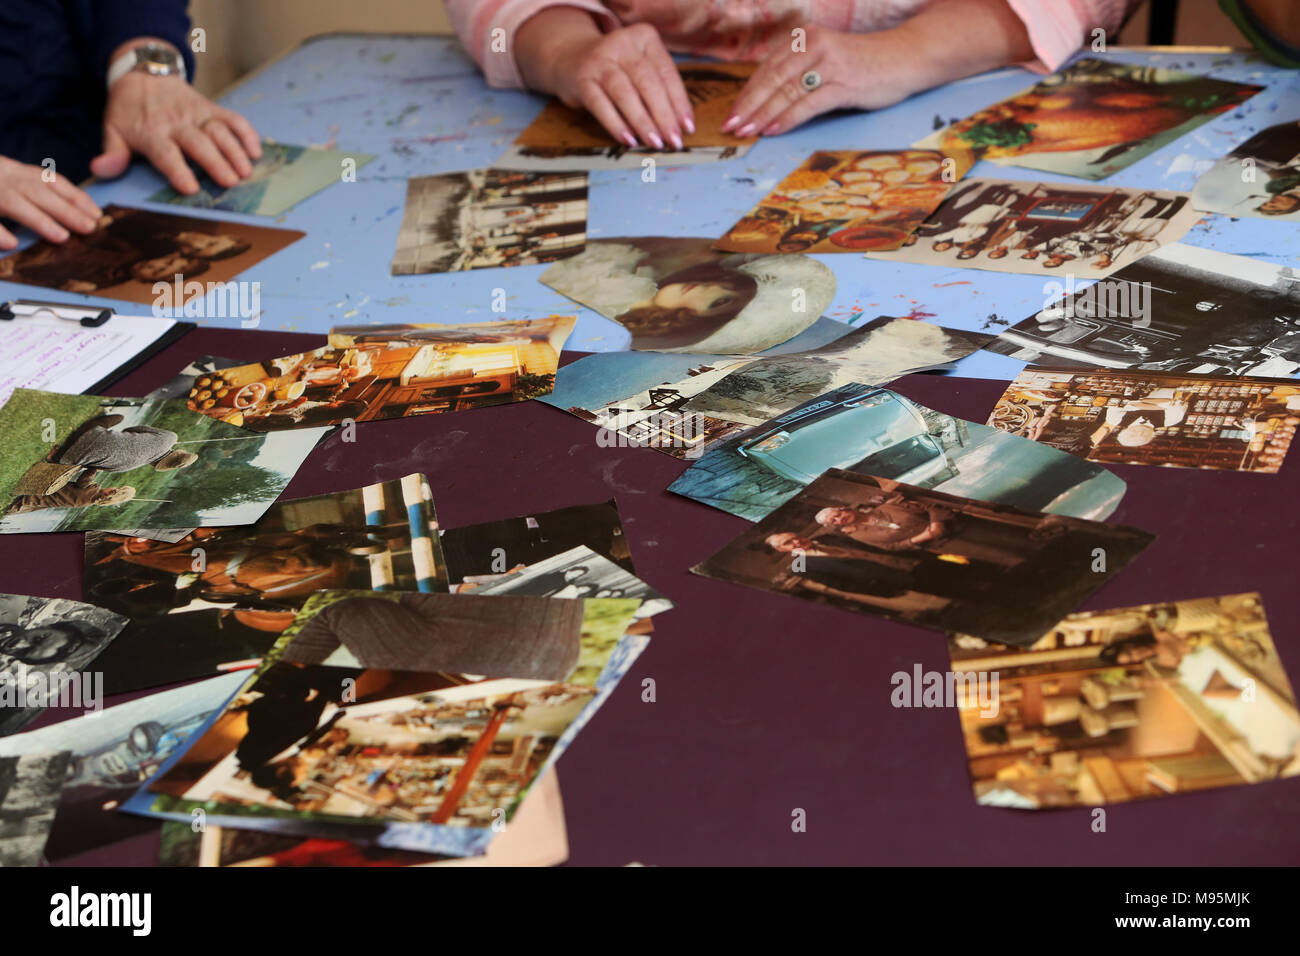 A craft club doing some crafting with old photographs in Bognor Regis, West Sussex, UK. - Stock Image